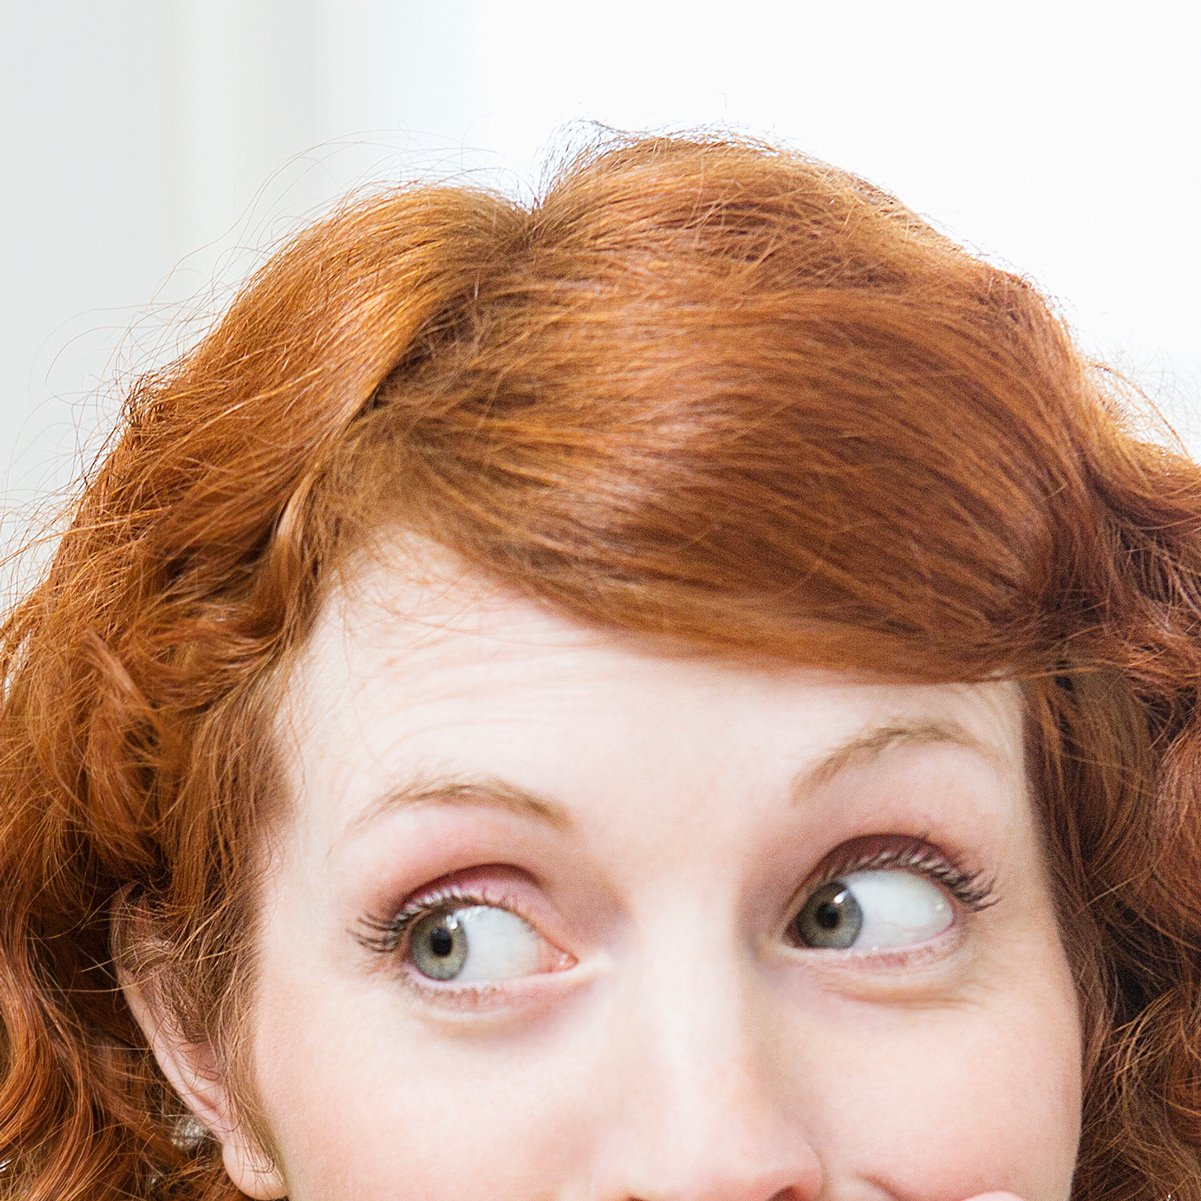 RESTAURANT DISCOUNTS FOR REDHEADS FWX